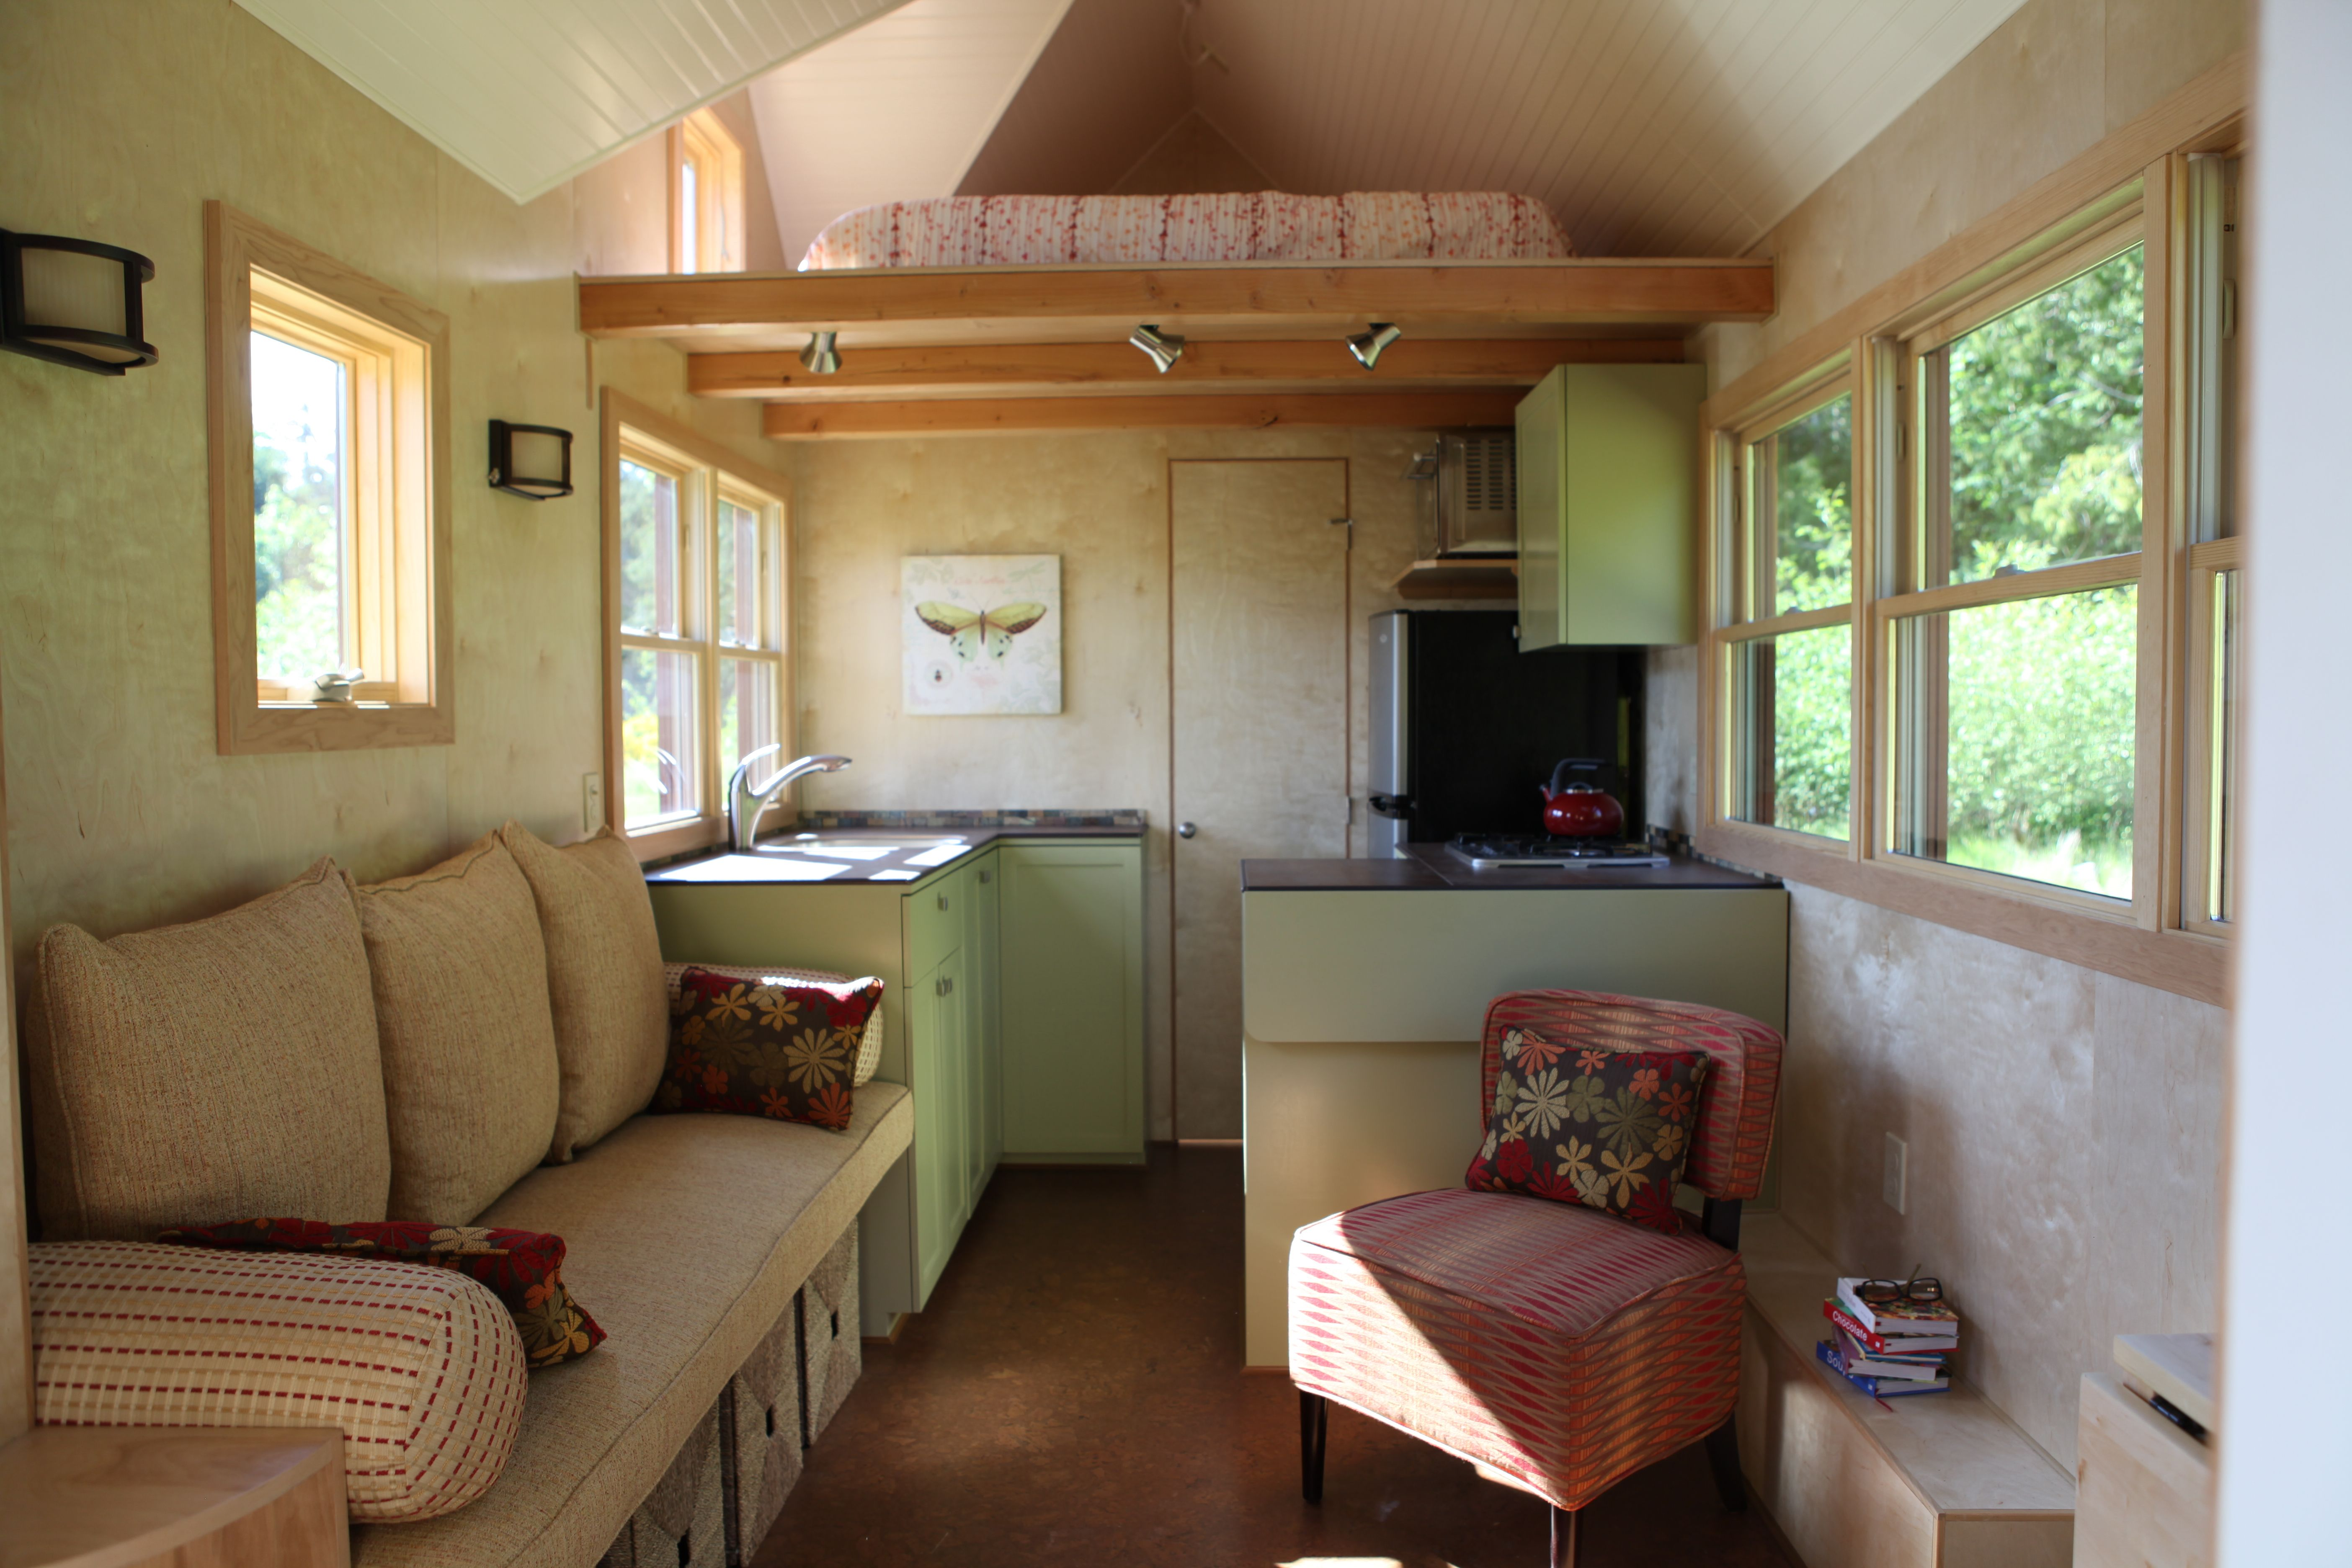 Inside seattle tiny homes  really like the different layout lofts and bathroom is at opposite end  washer dryer also rh br pinterest